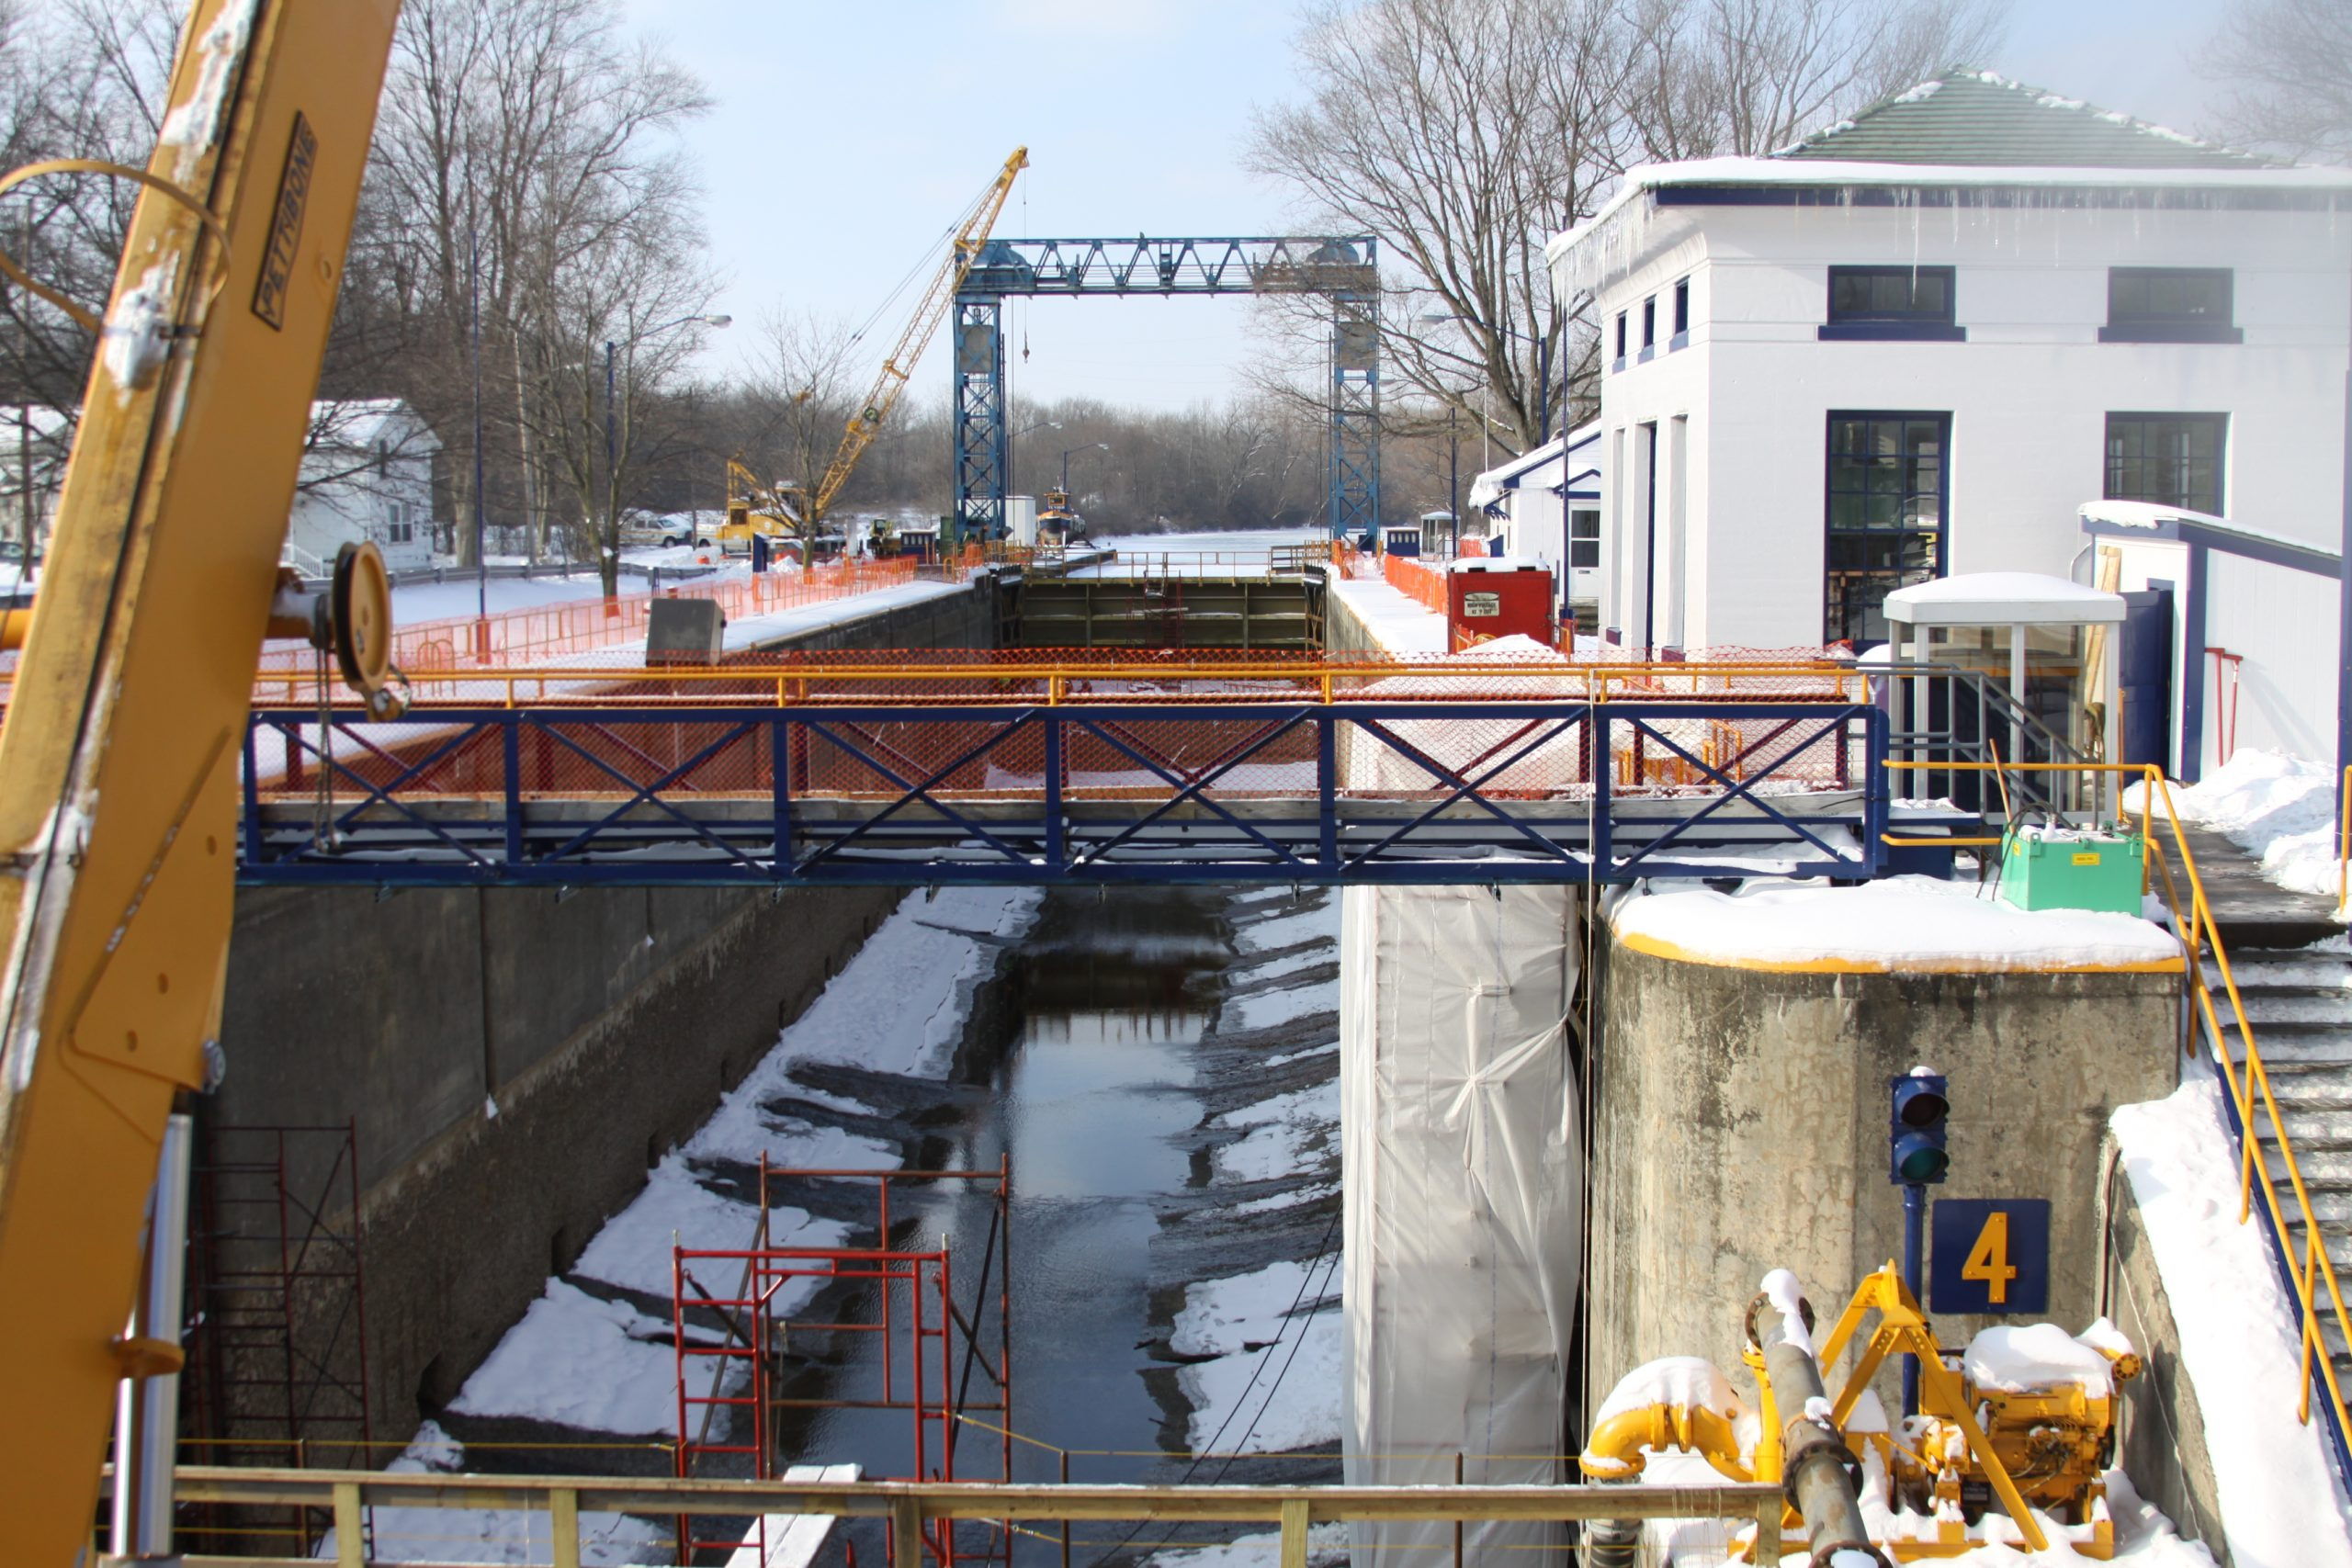 Seven Chosen for Ideas on Transforming the Canal System